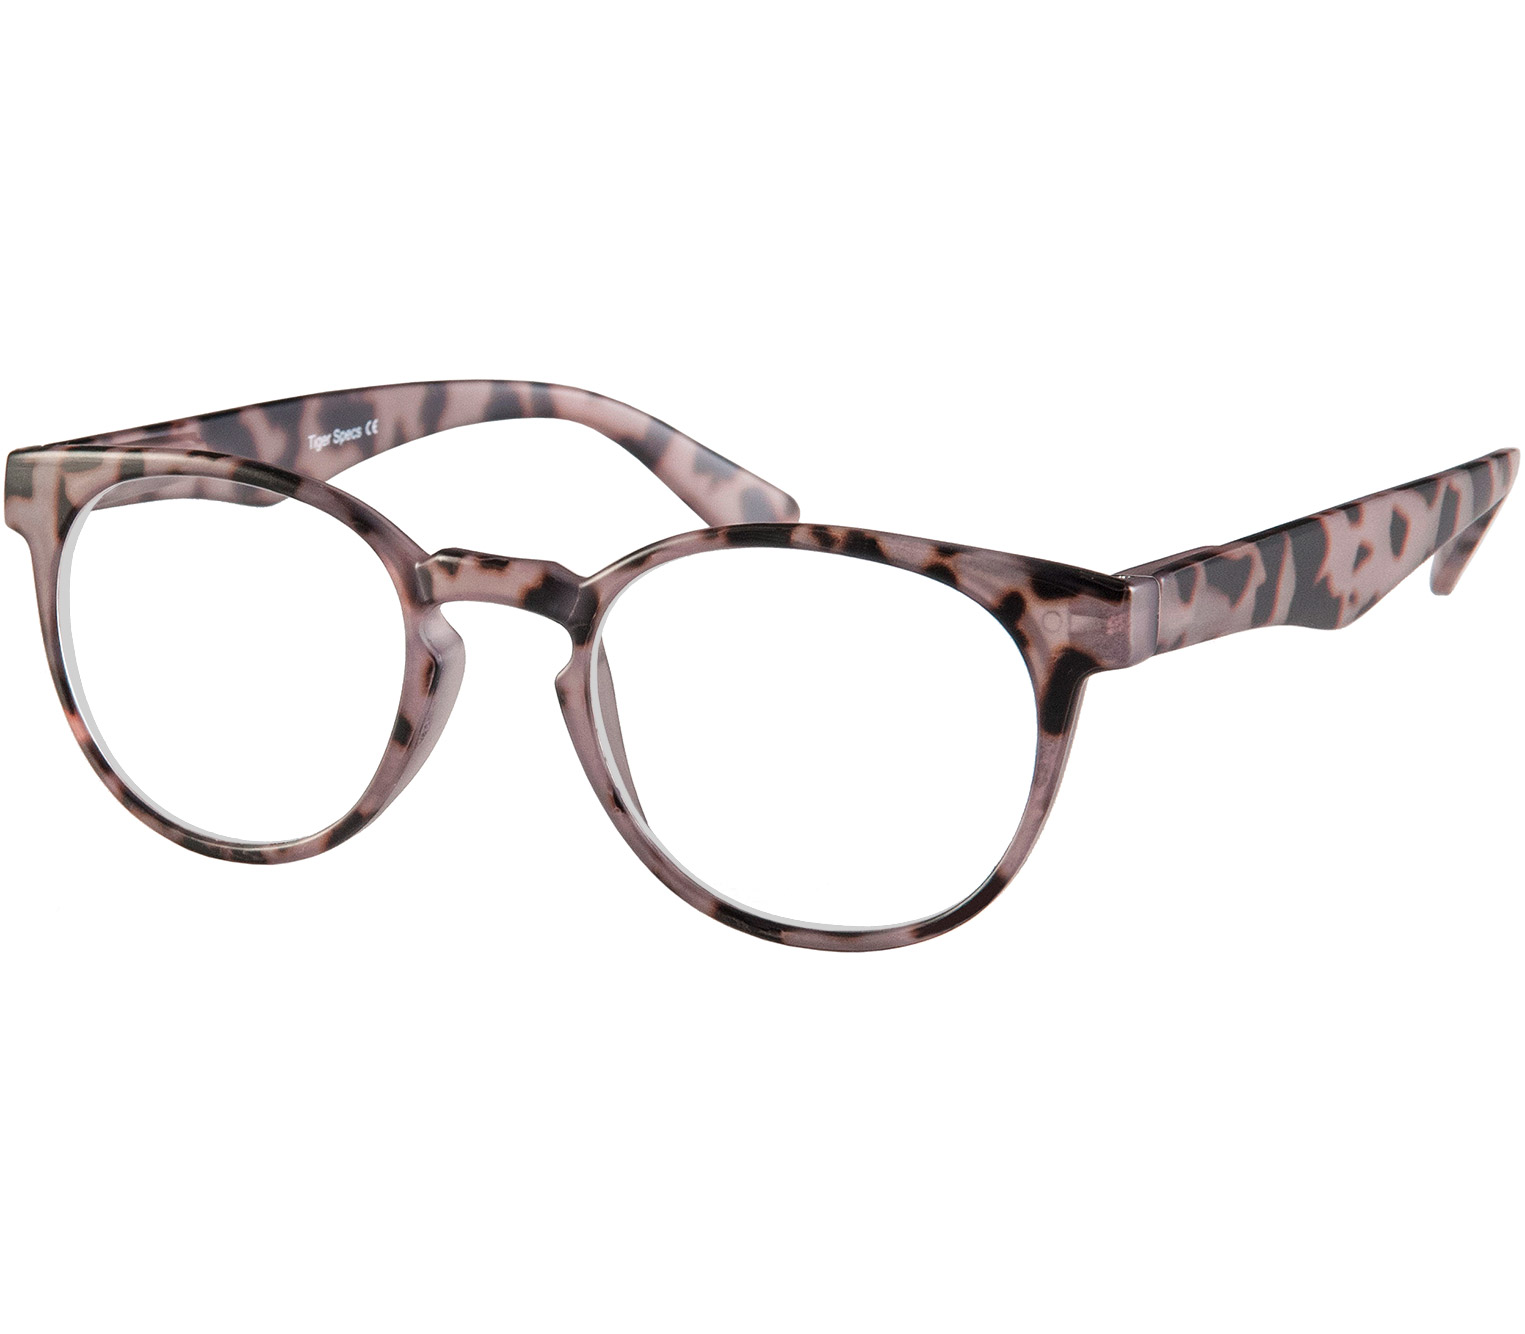 Main Image (Angle) - Fairfax (Grey Tortoise) Retro Reading Glasses